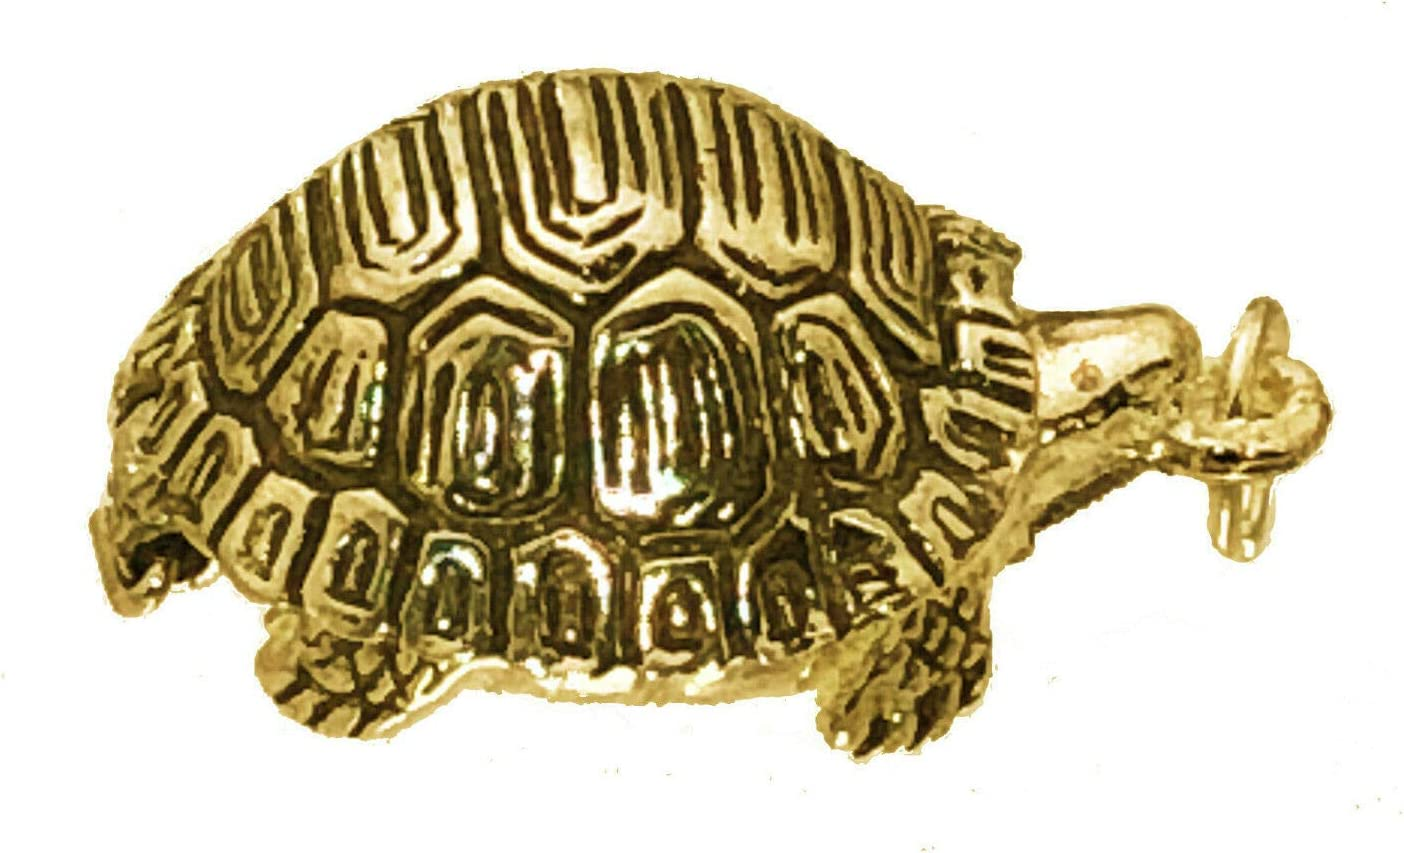 TORTOISE TURTLE 3D CHARM 925 STERLING SILVER